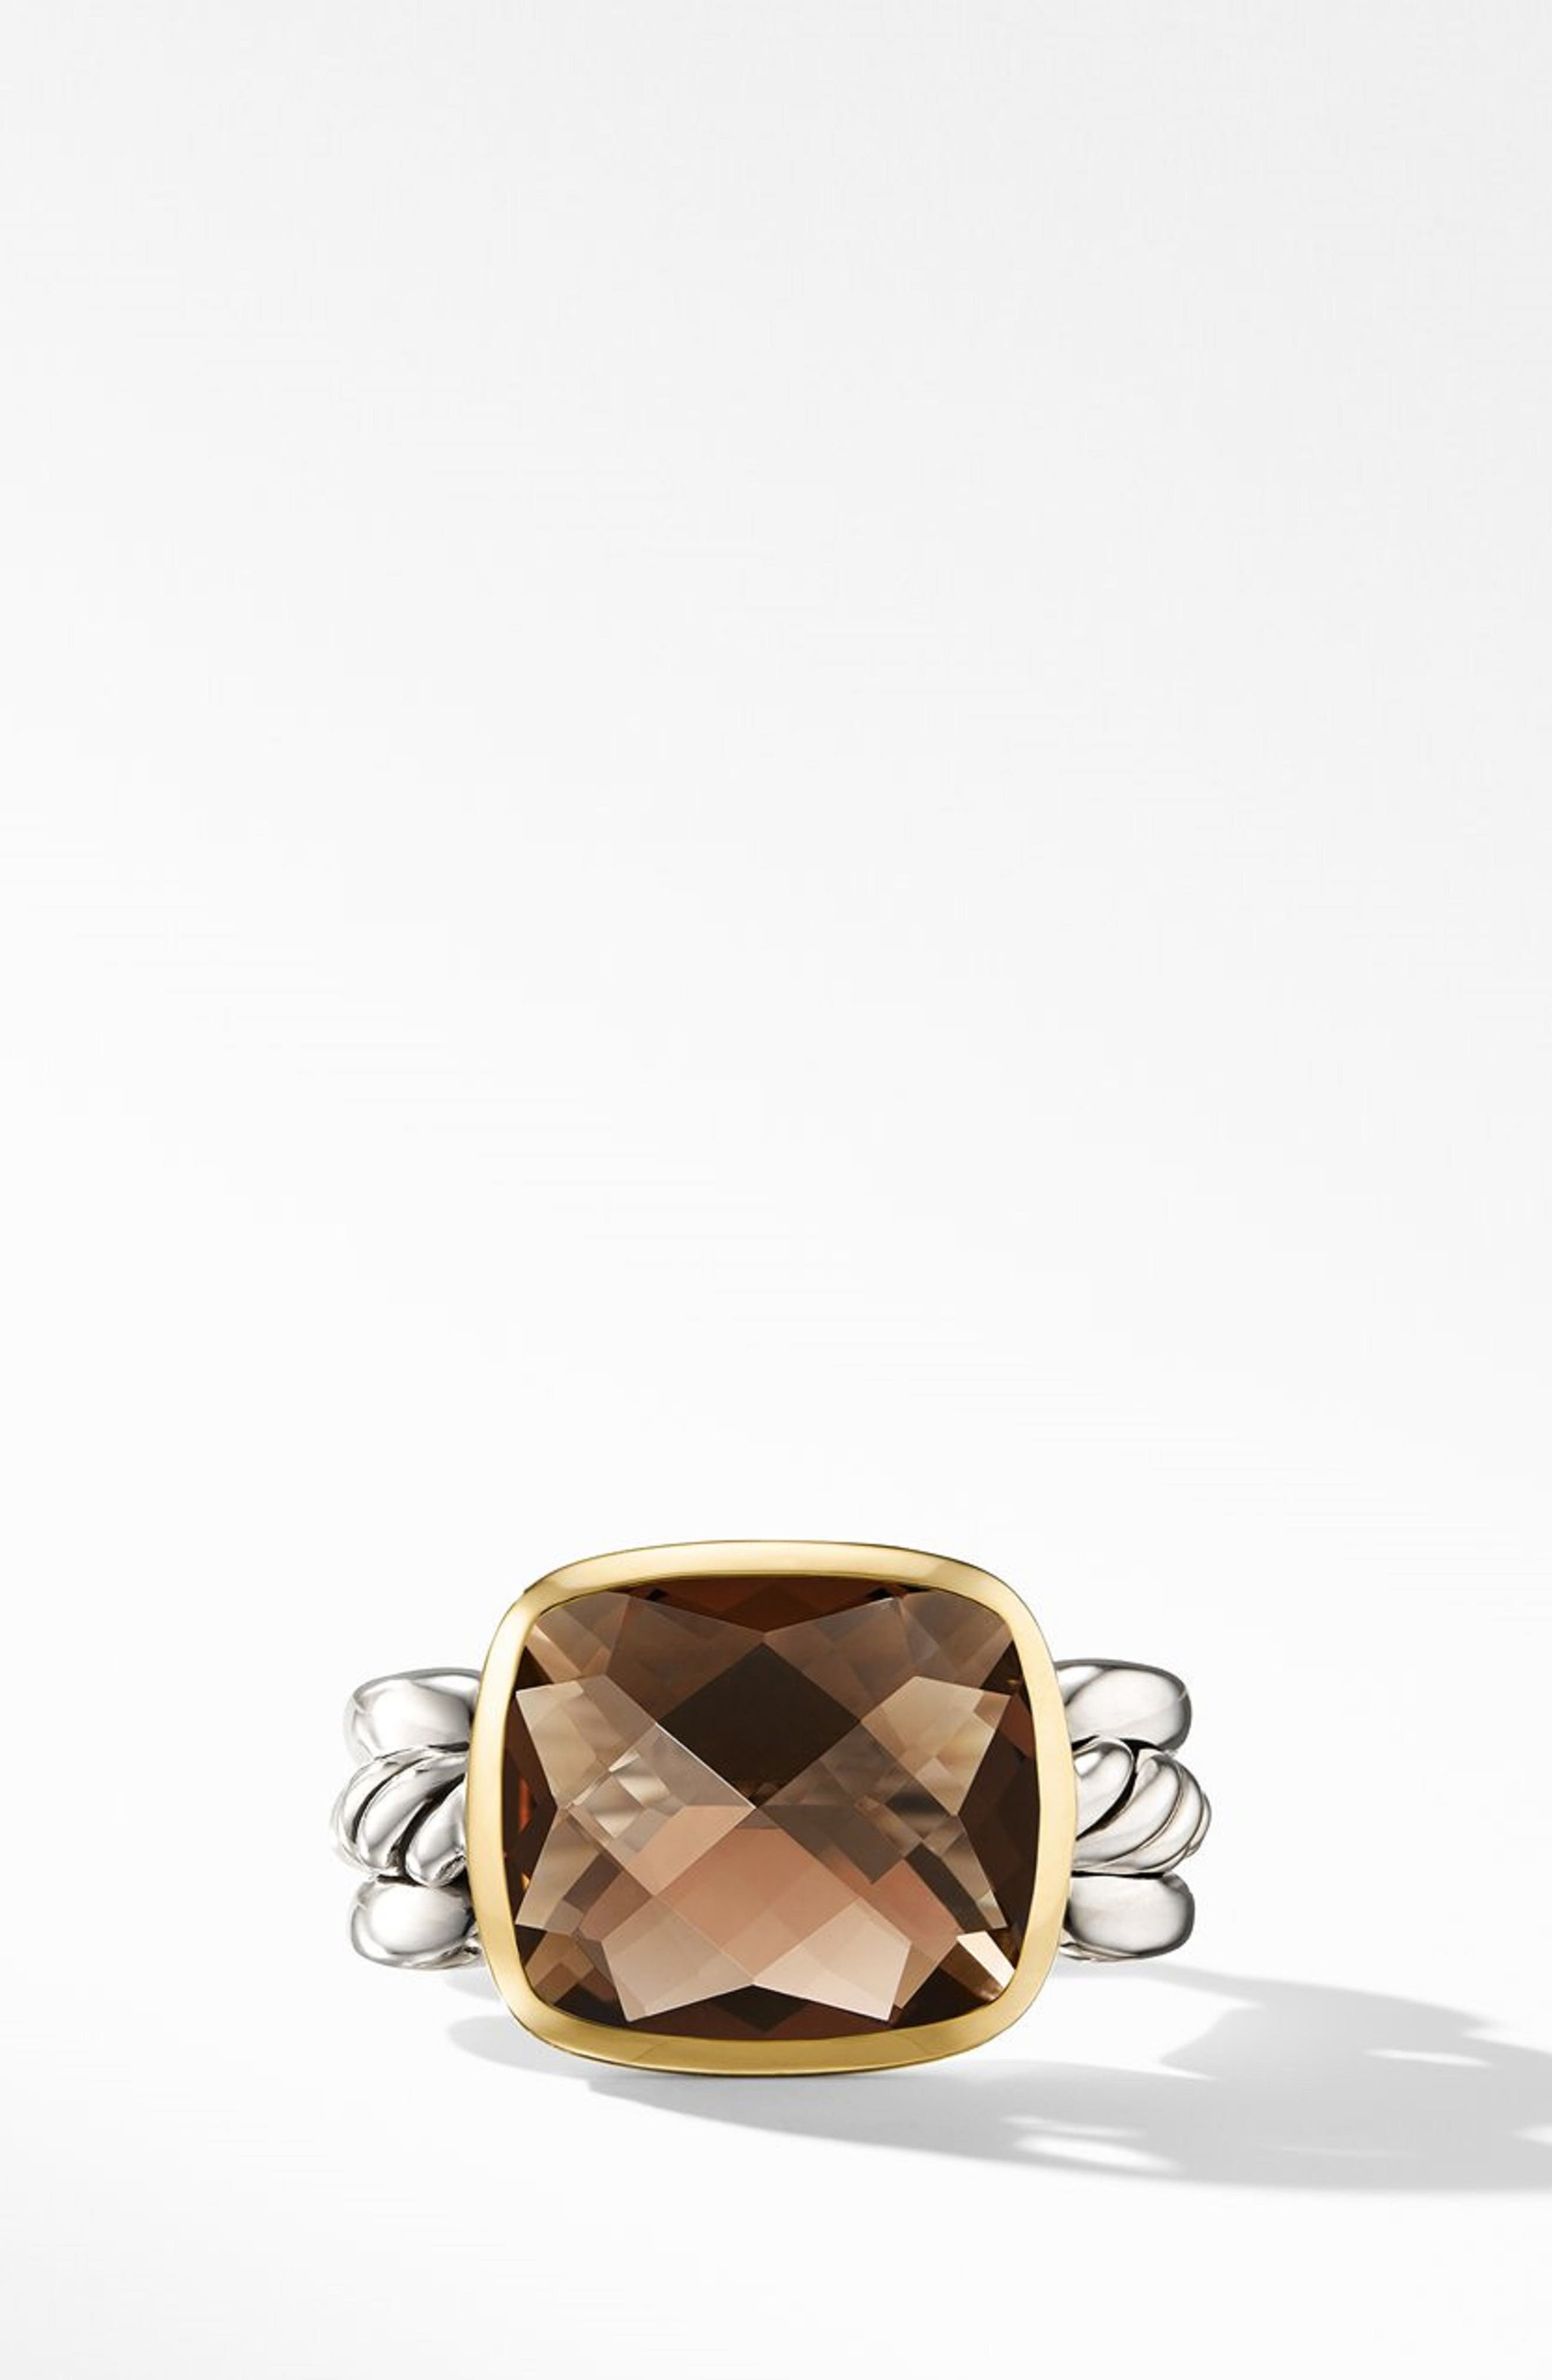 Wellesley Link Statement Ring with 18K Gold,                         Main,                         color, SILVER/ SMOKY QUARTZ